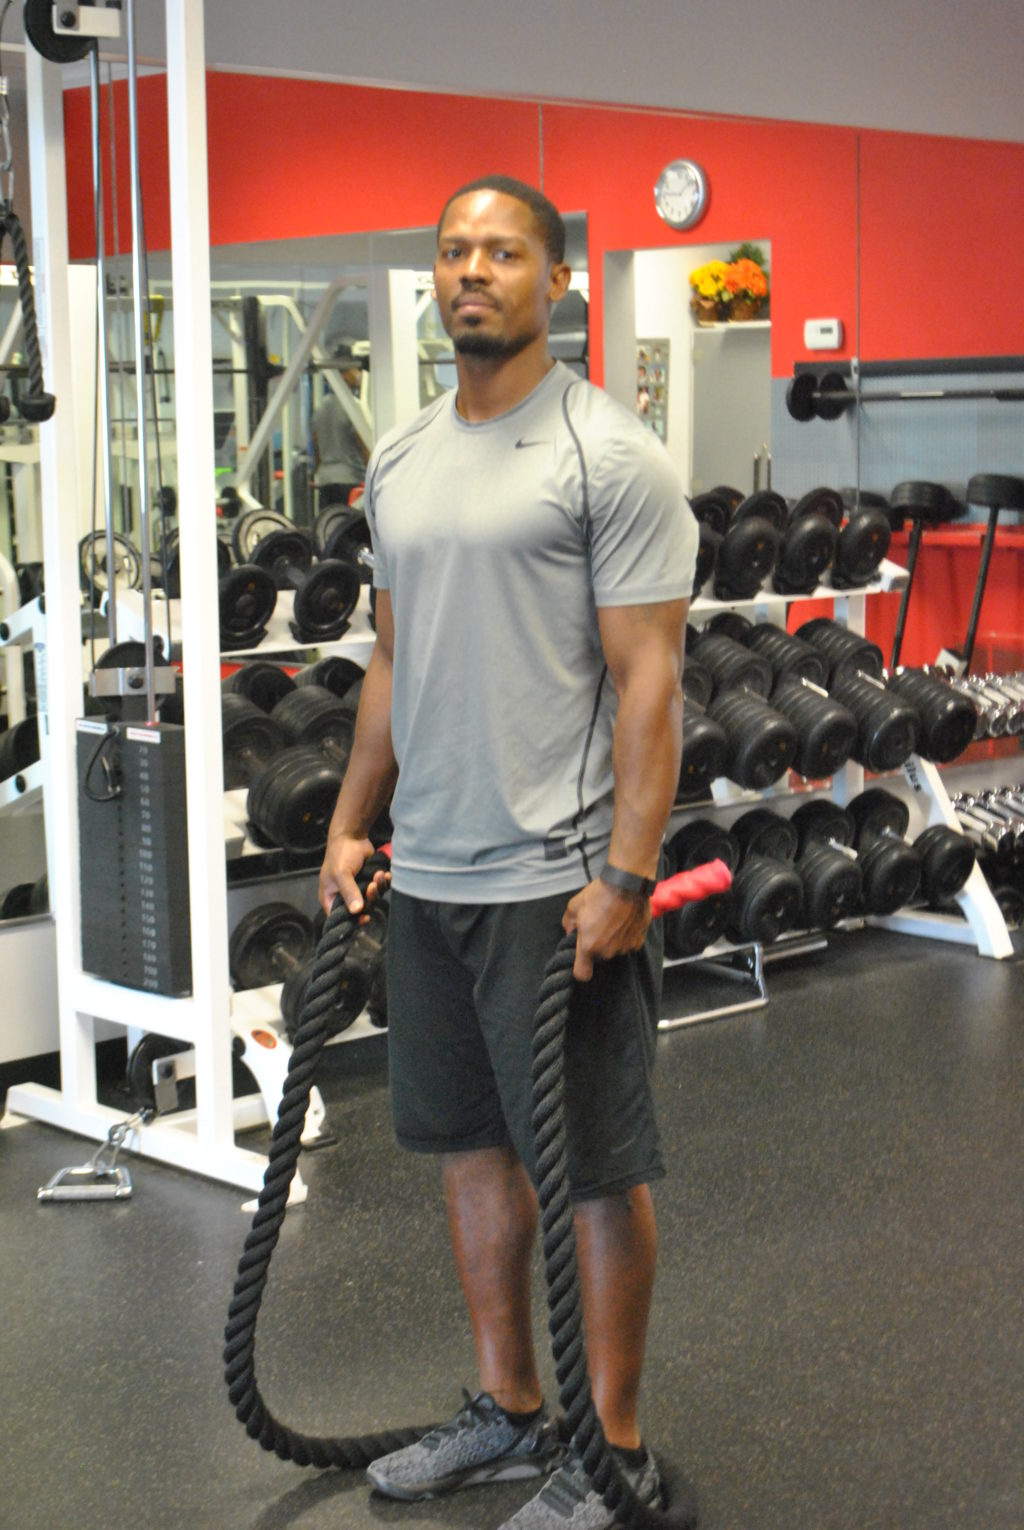 Personal Trainer St.-louis, Missouri - Michael Thomas